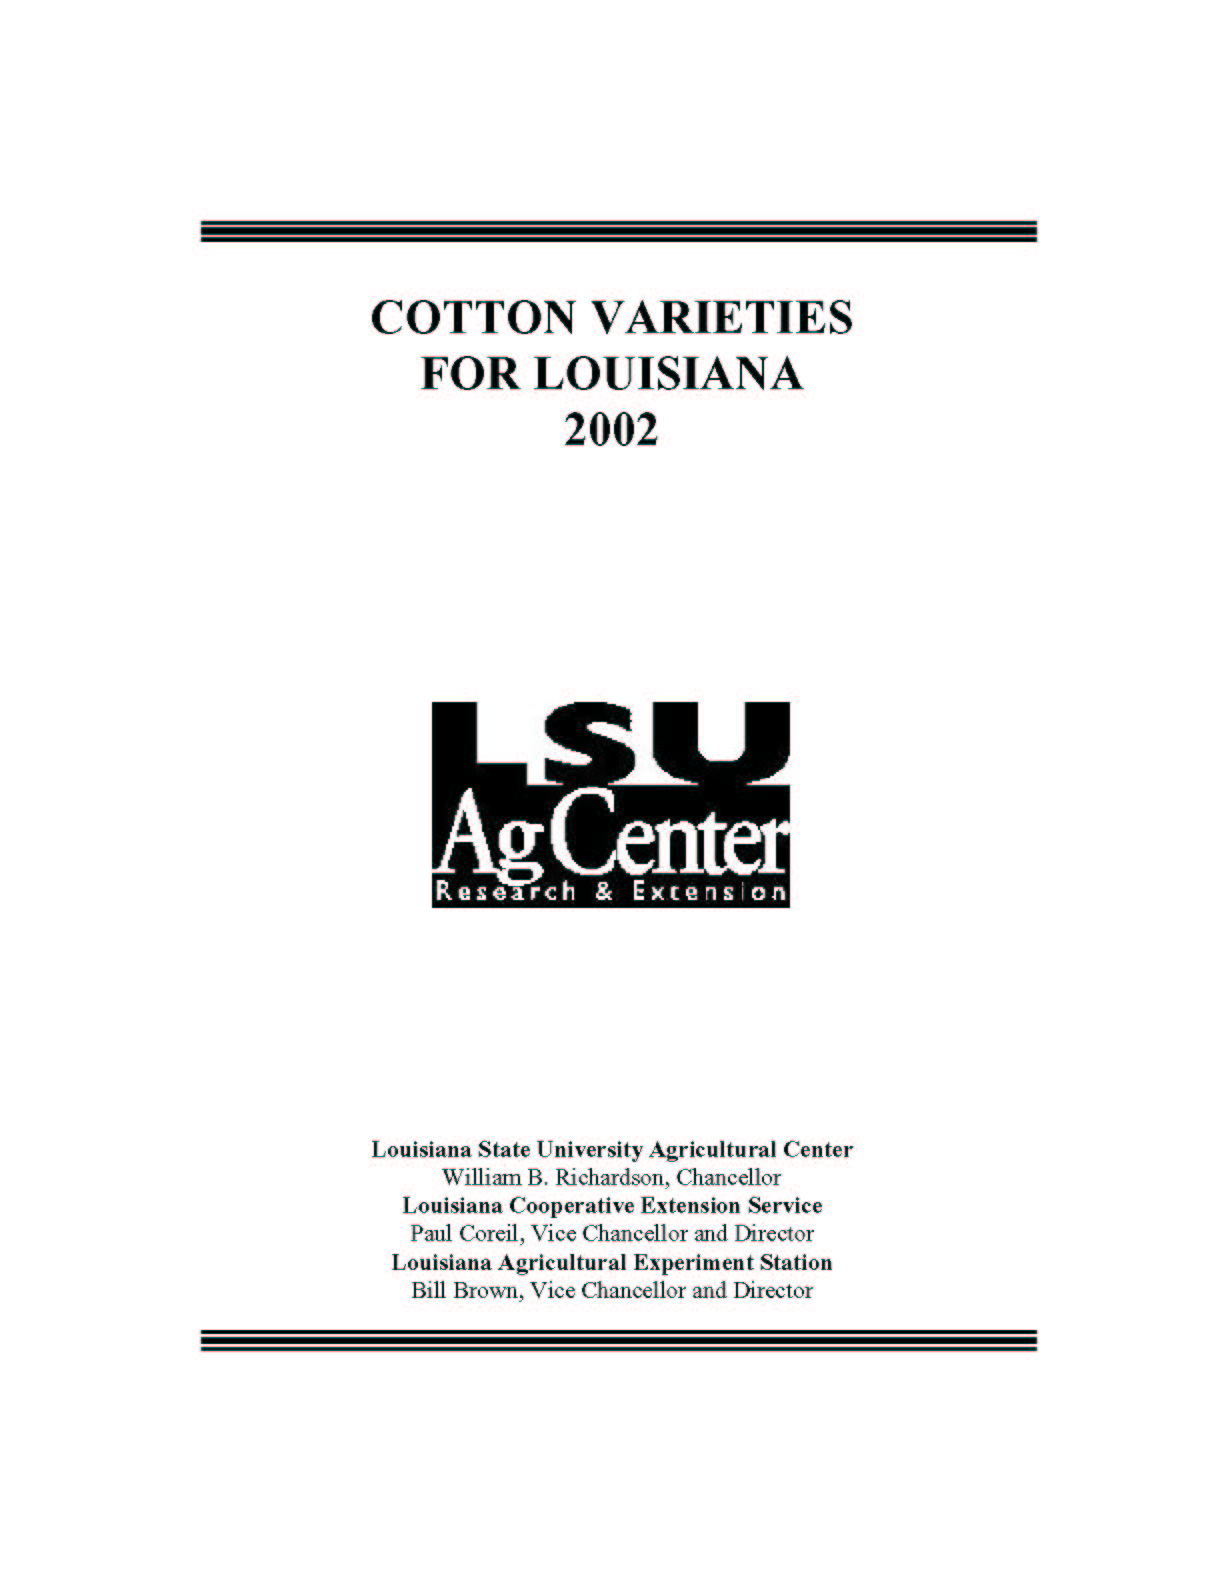 2002 Cotton Varieties for Louisiana